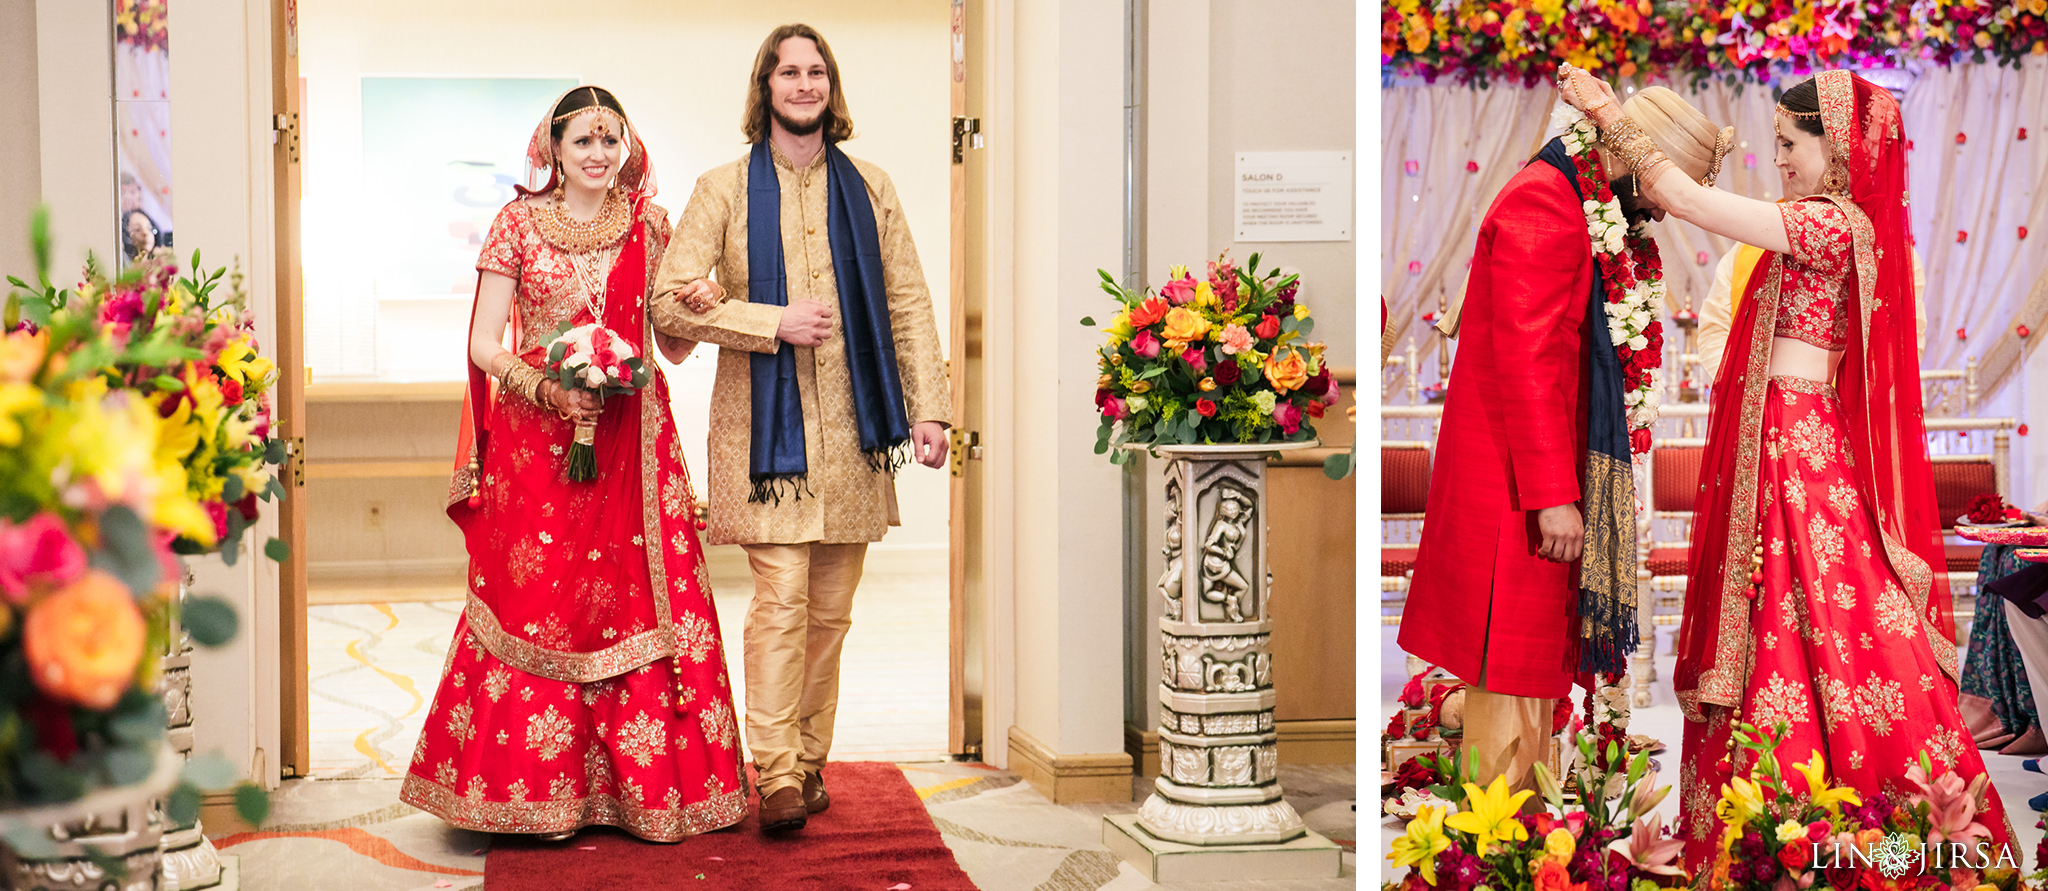 18 Hotel Irvine Multicultural Indian Wedding Photography